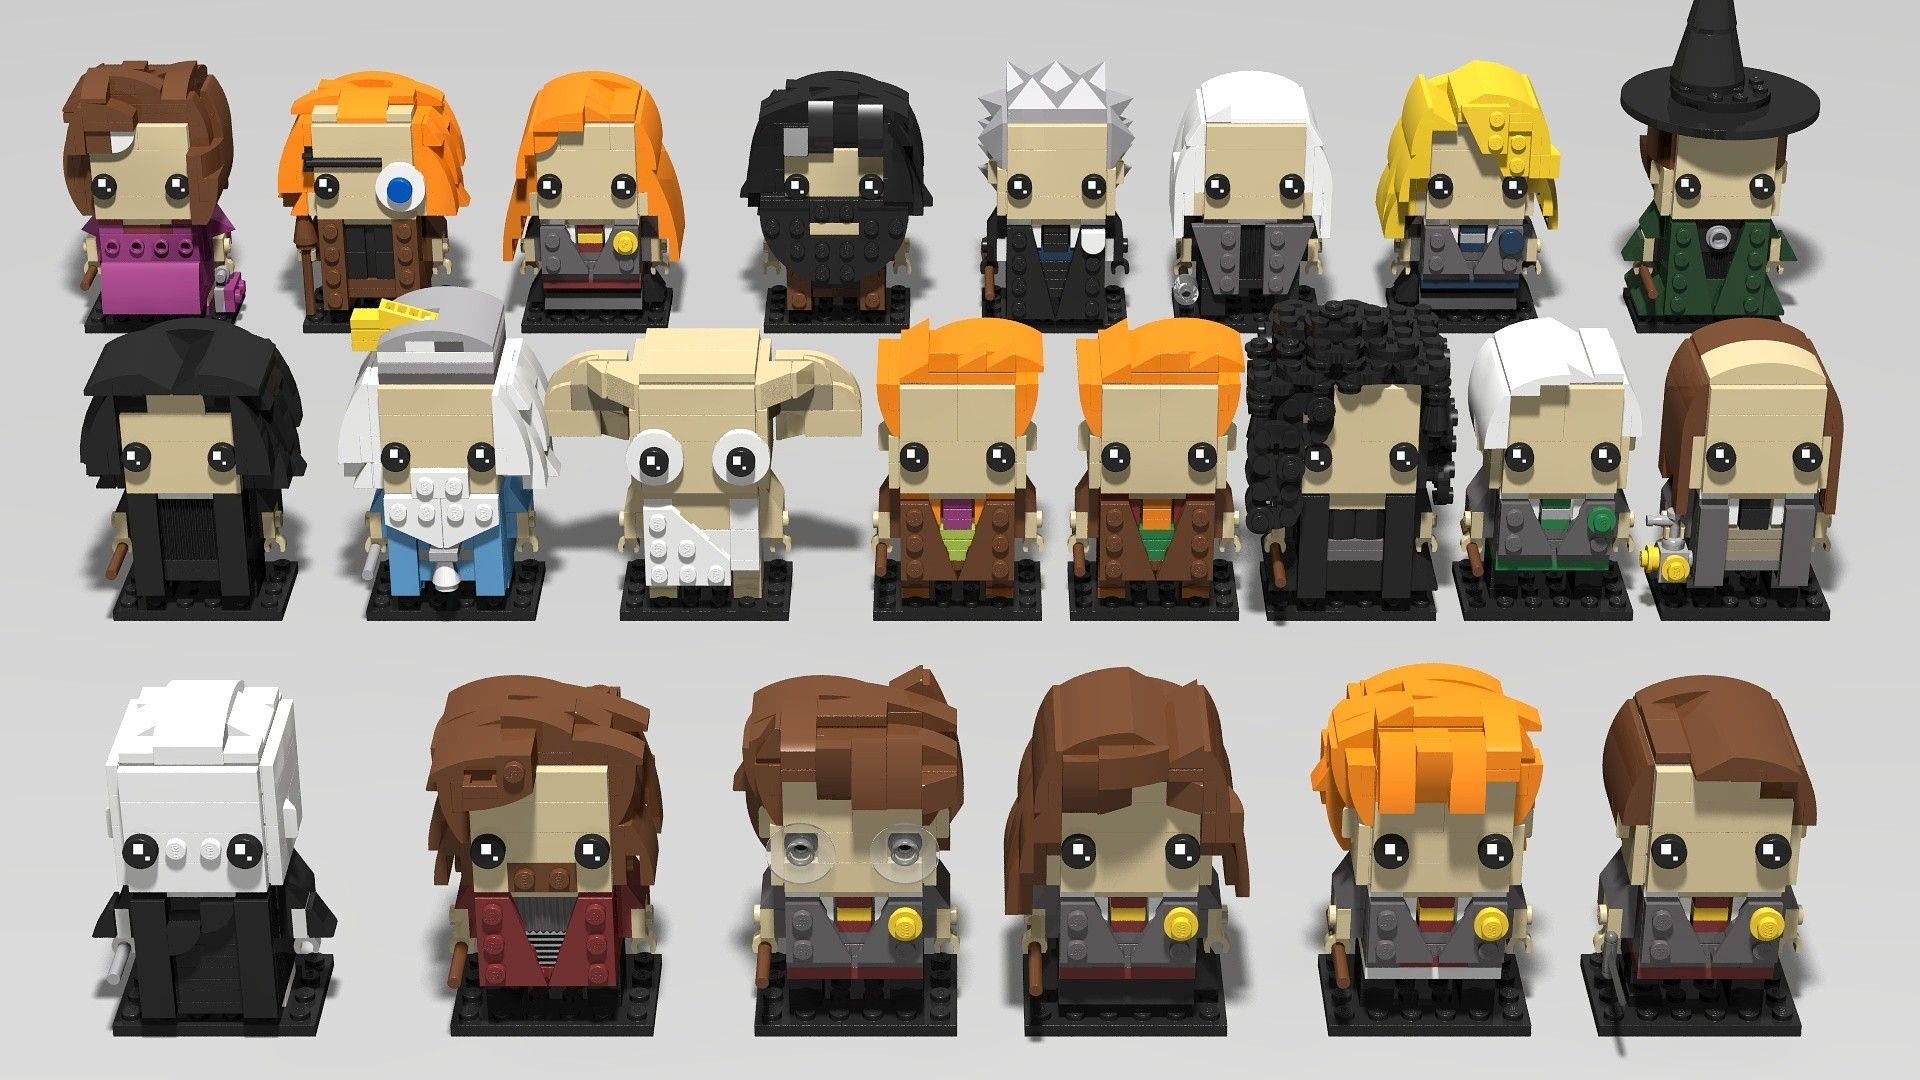 The Latest Collection Of My Harry Potter Lego Brickheadz Designs Lego Harry Potter Cool Lego Creations Legos